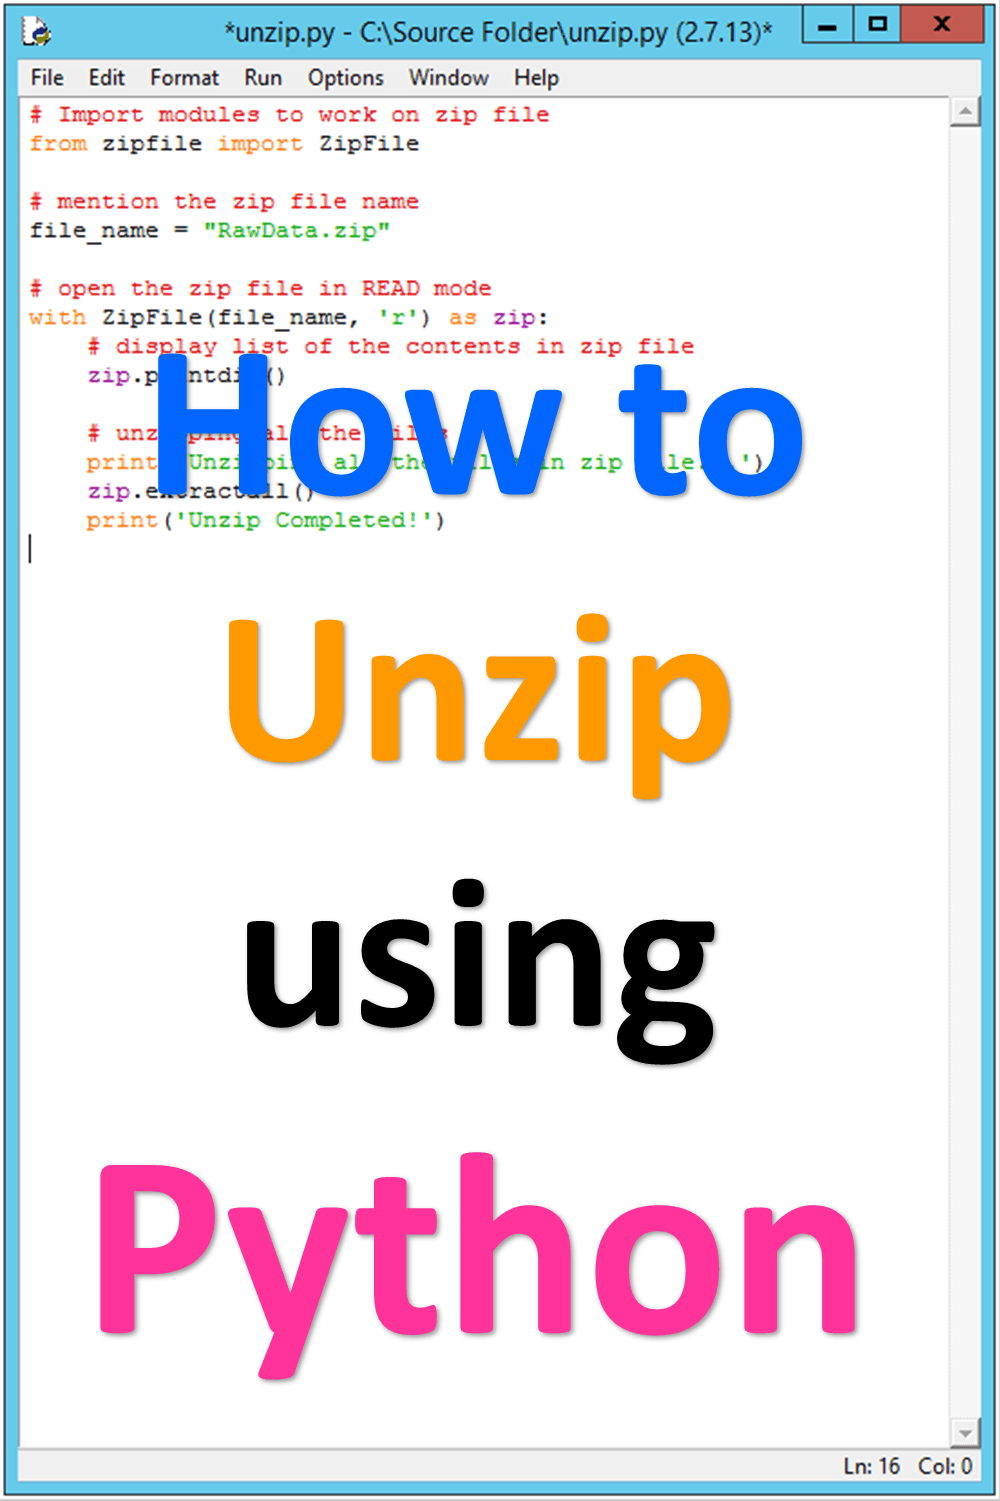 SimpleMSOffice #Python #Unzip Condition: Python should be